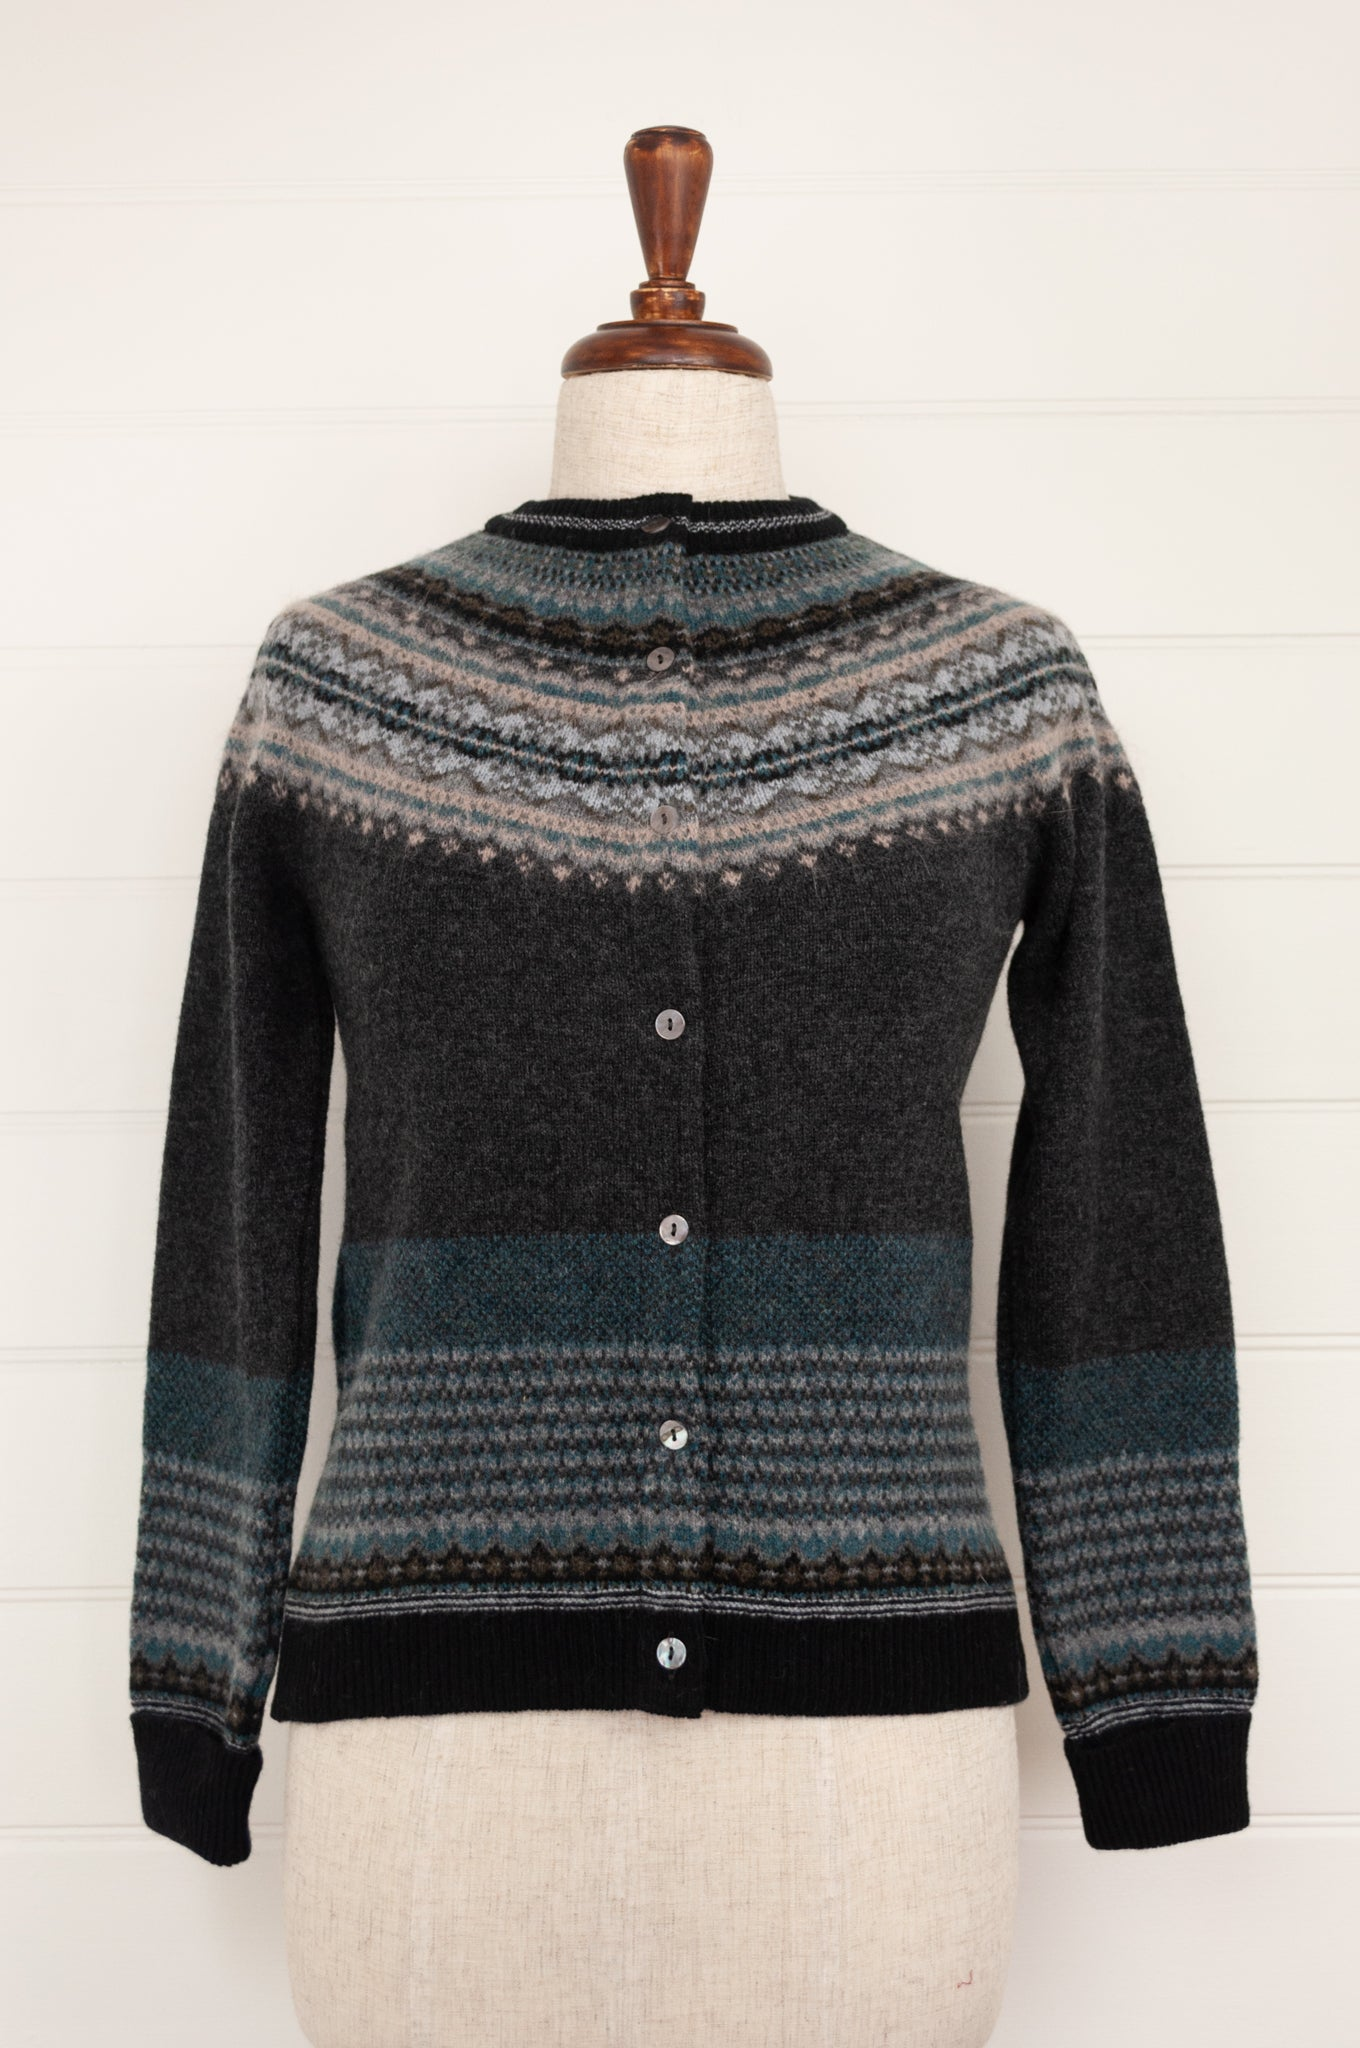 Eribé Alpine fairisle cardigan in Colliery, charcoal background, with accents in shades of oatmeal, teal, and soft blue greys